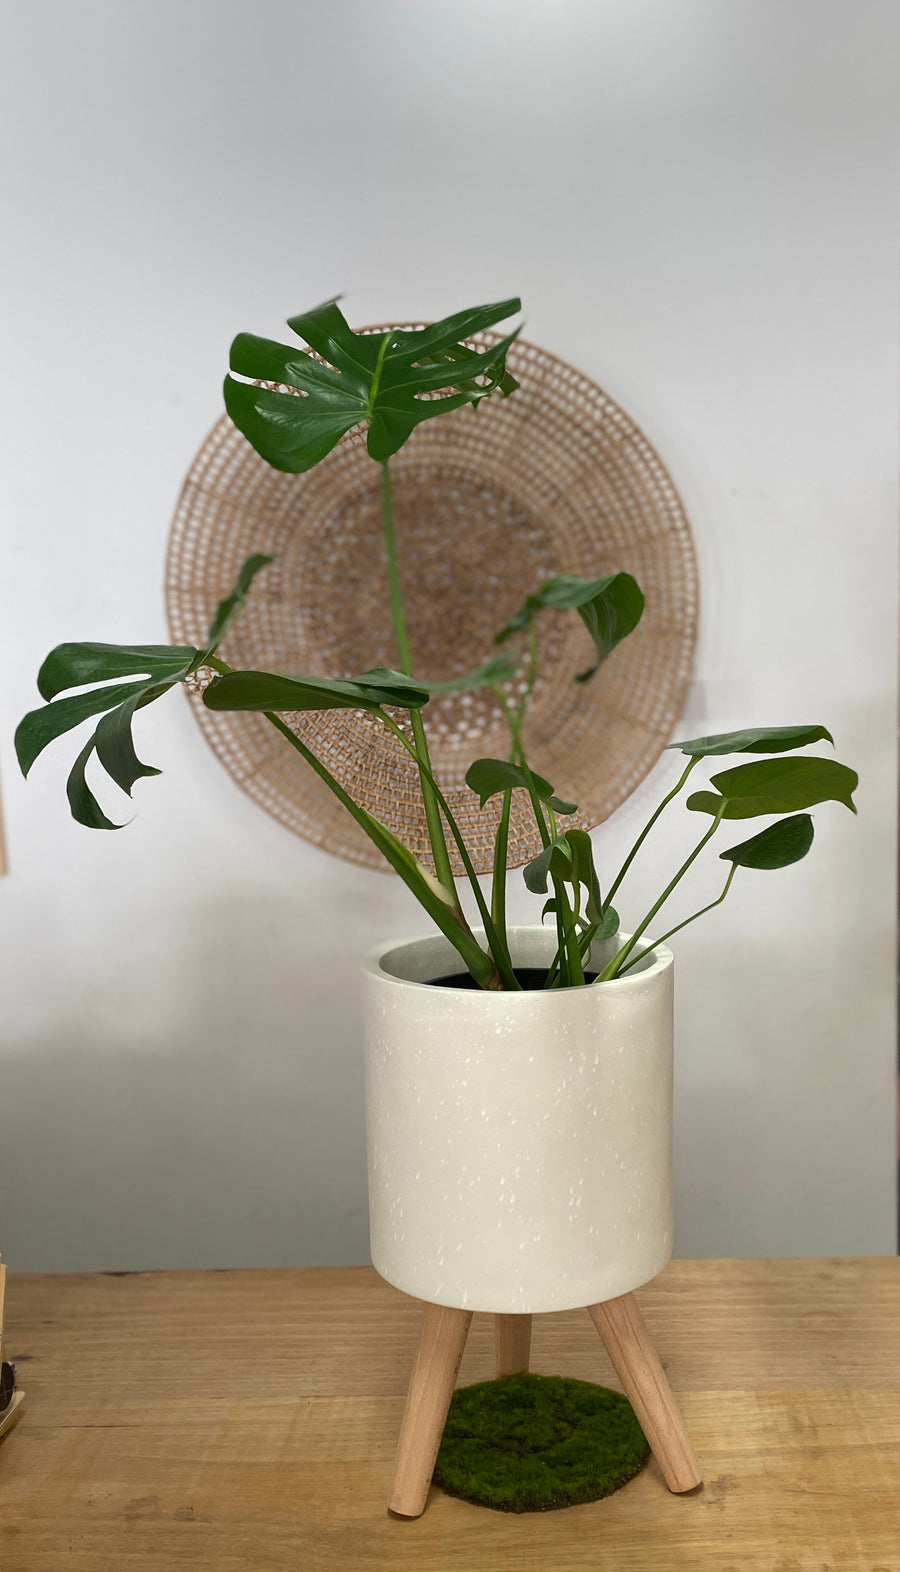 Monstera Deliciosa - Fruit Salad